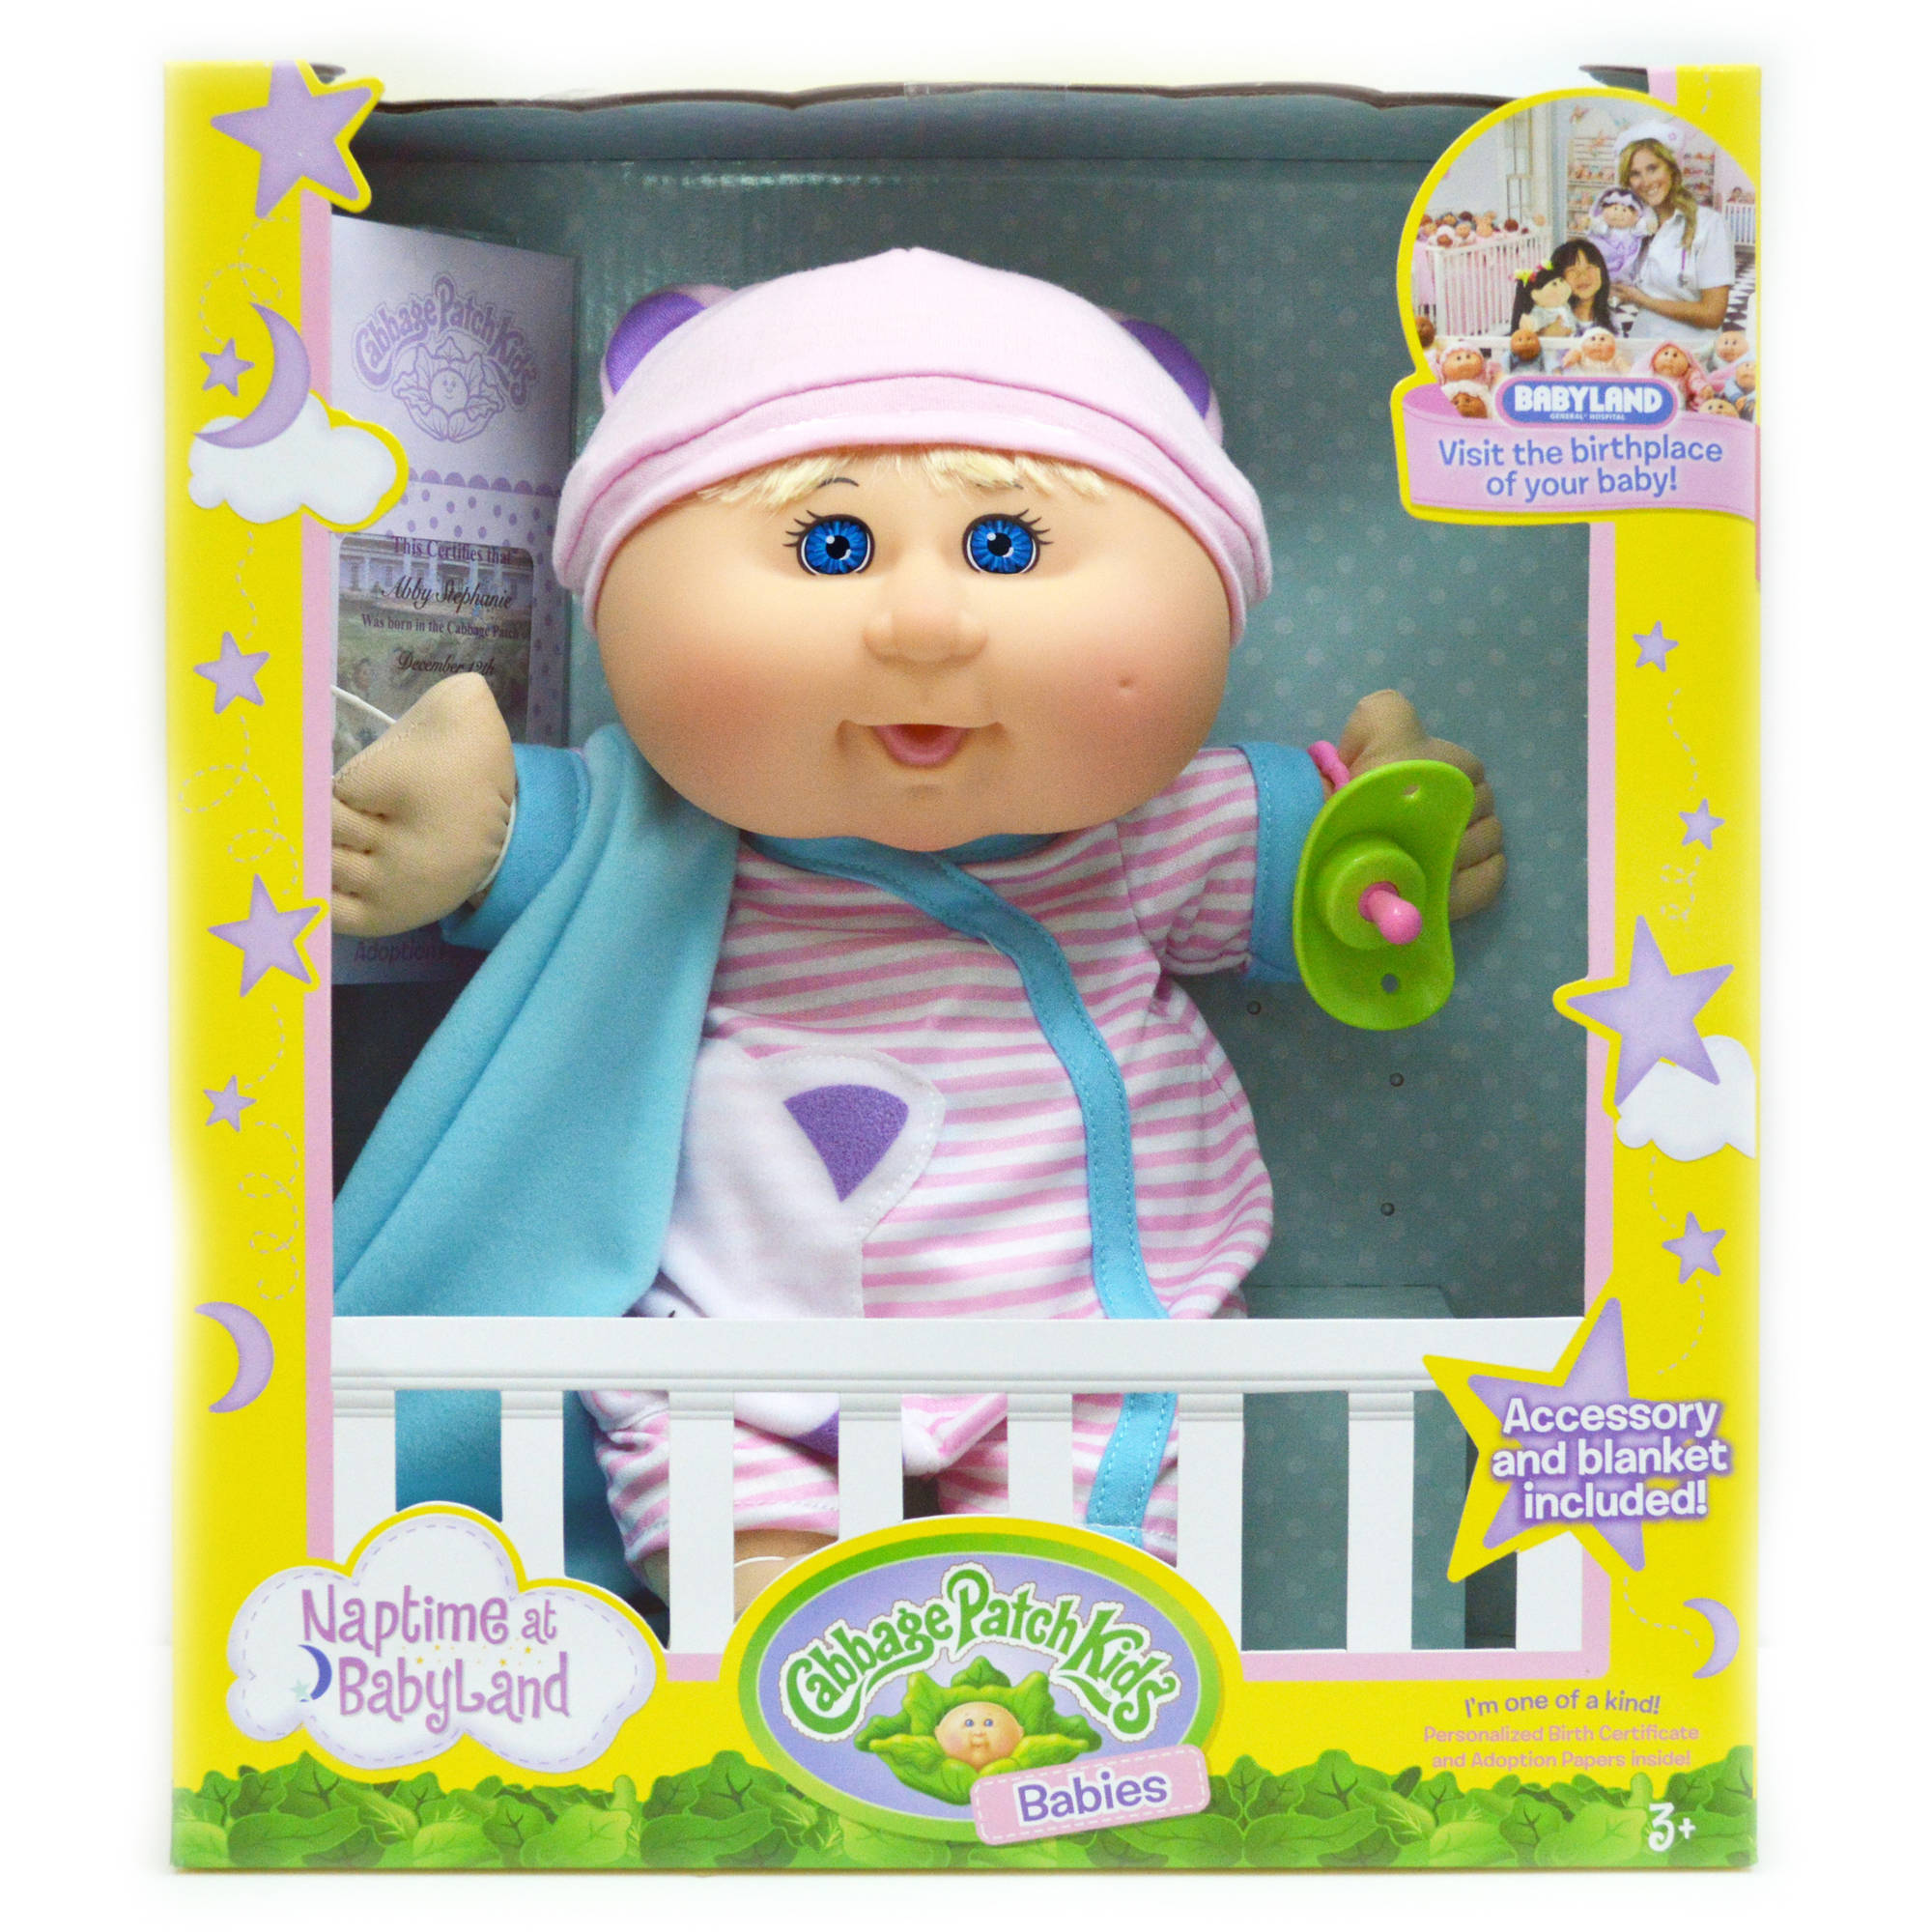 cdba35df04b Cabbage Patch Kids Naptime Babies Doll